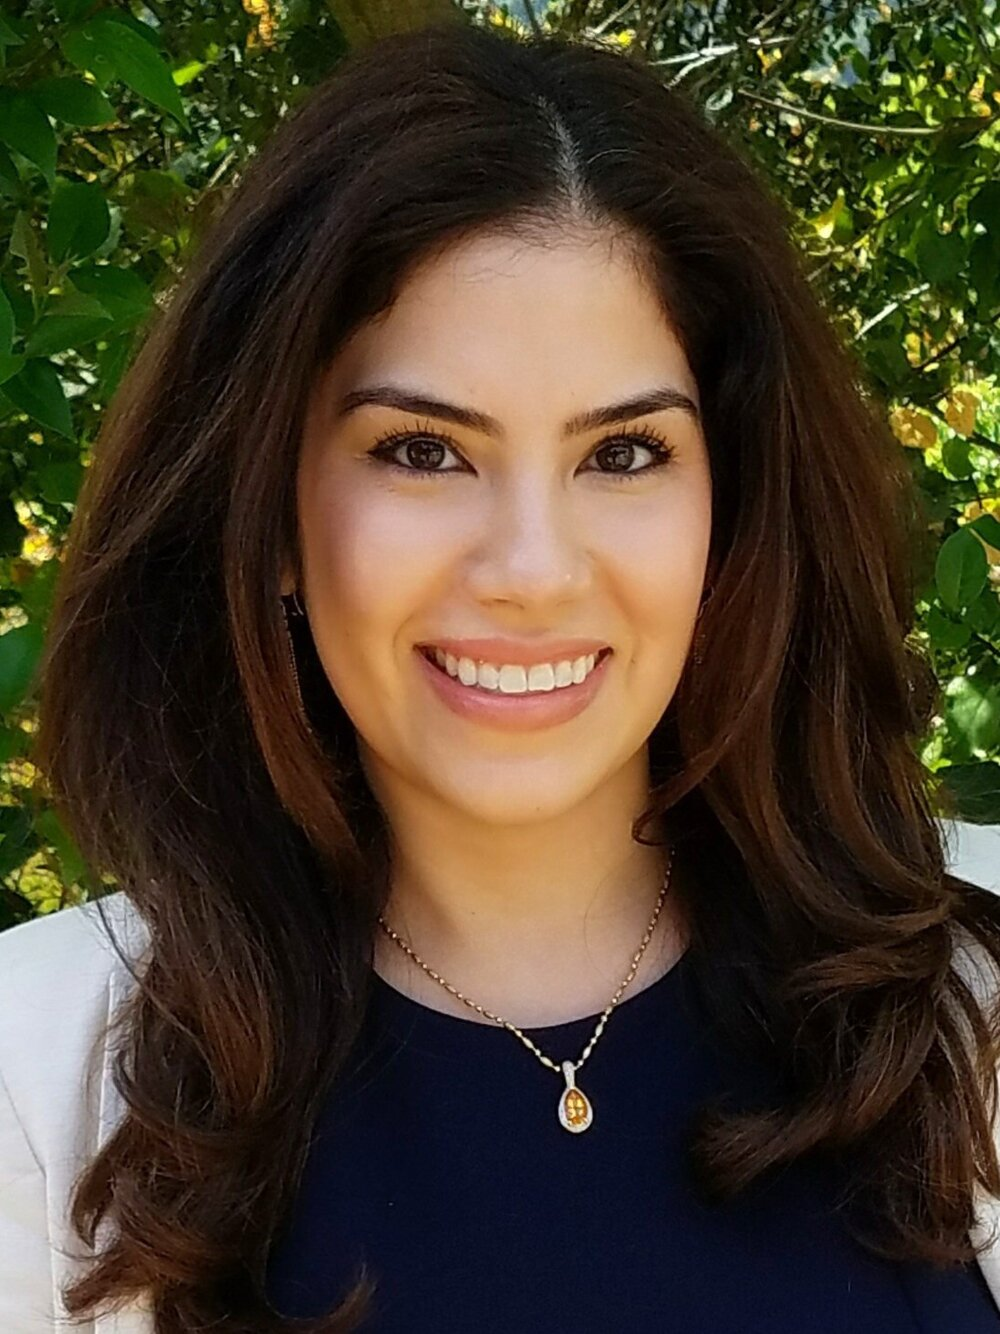 Nehjla Mashal, Ph.D.    Licensed Psychologist   Dr. Mashal is a licensed psychologist specializing in cognitive behavioral and problem-solving therapies for anxiety and depression across the adult lifespan.  San Francisco